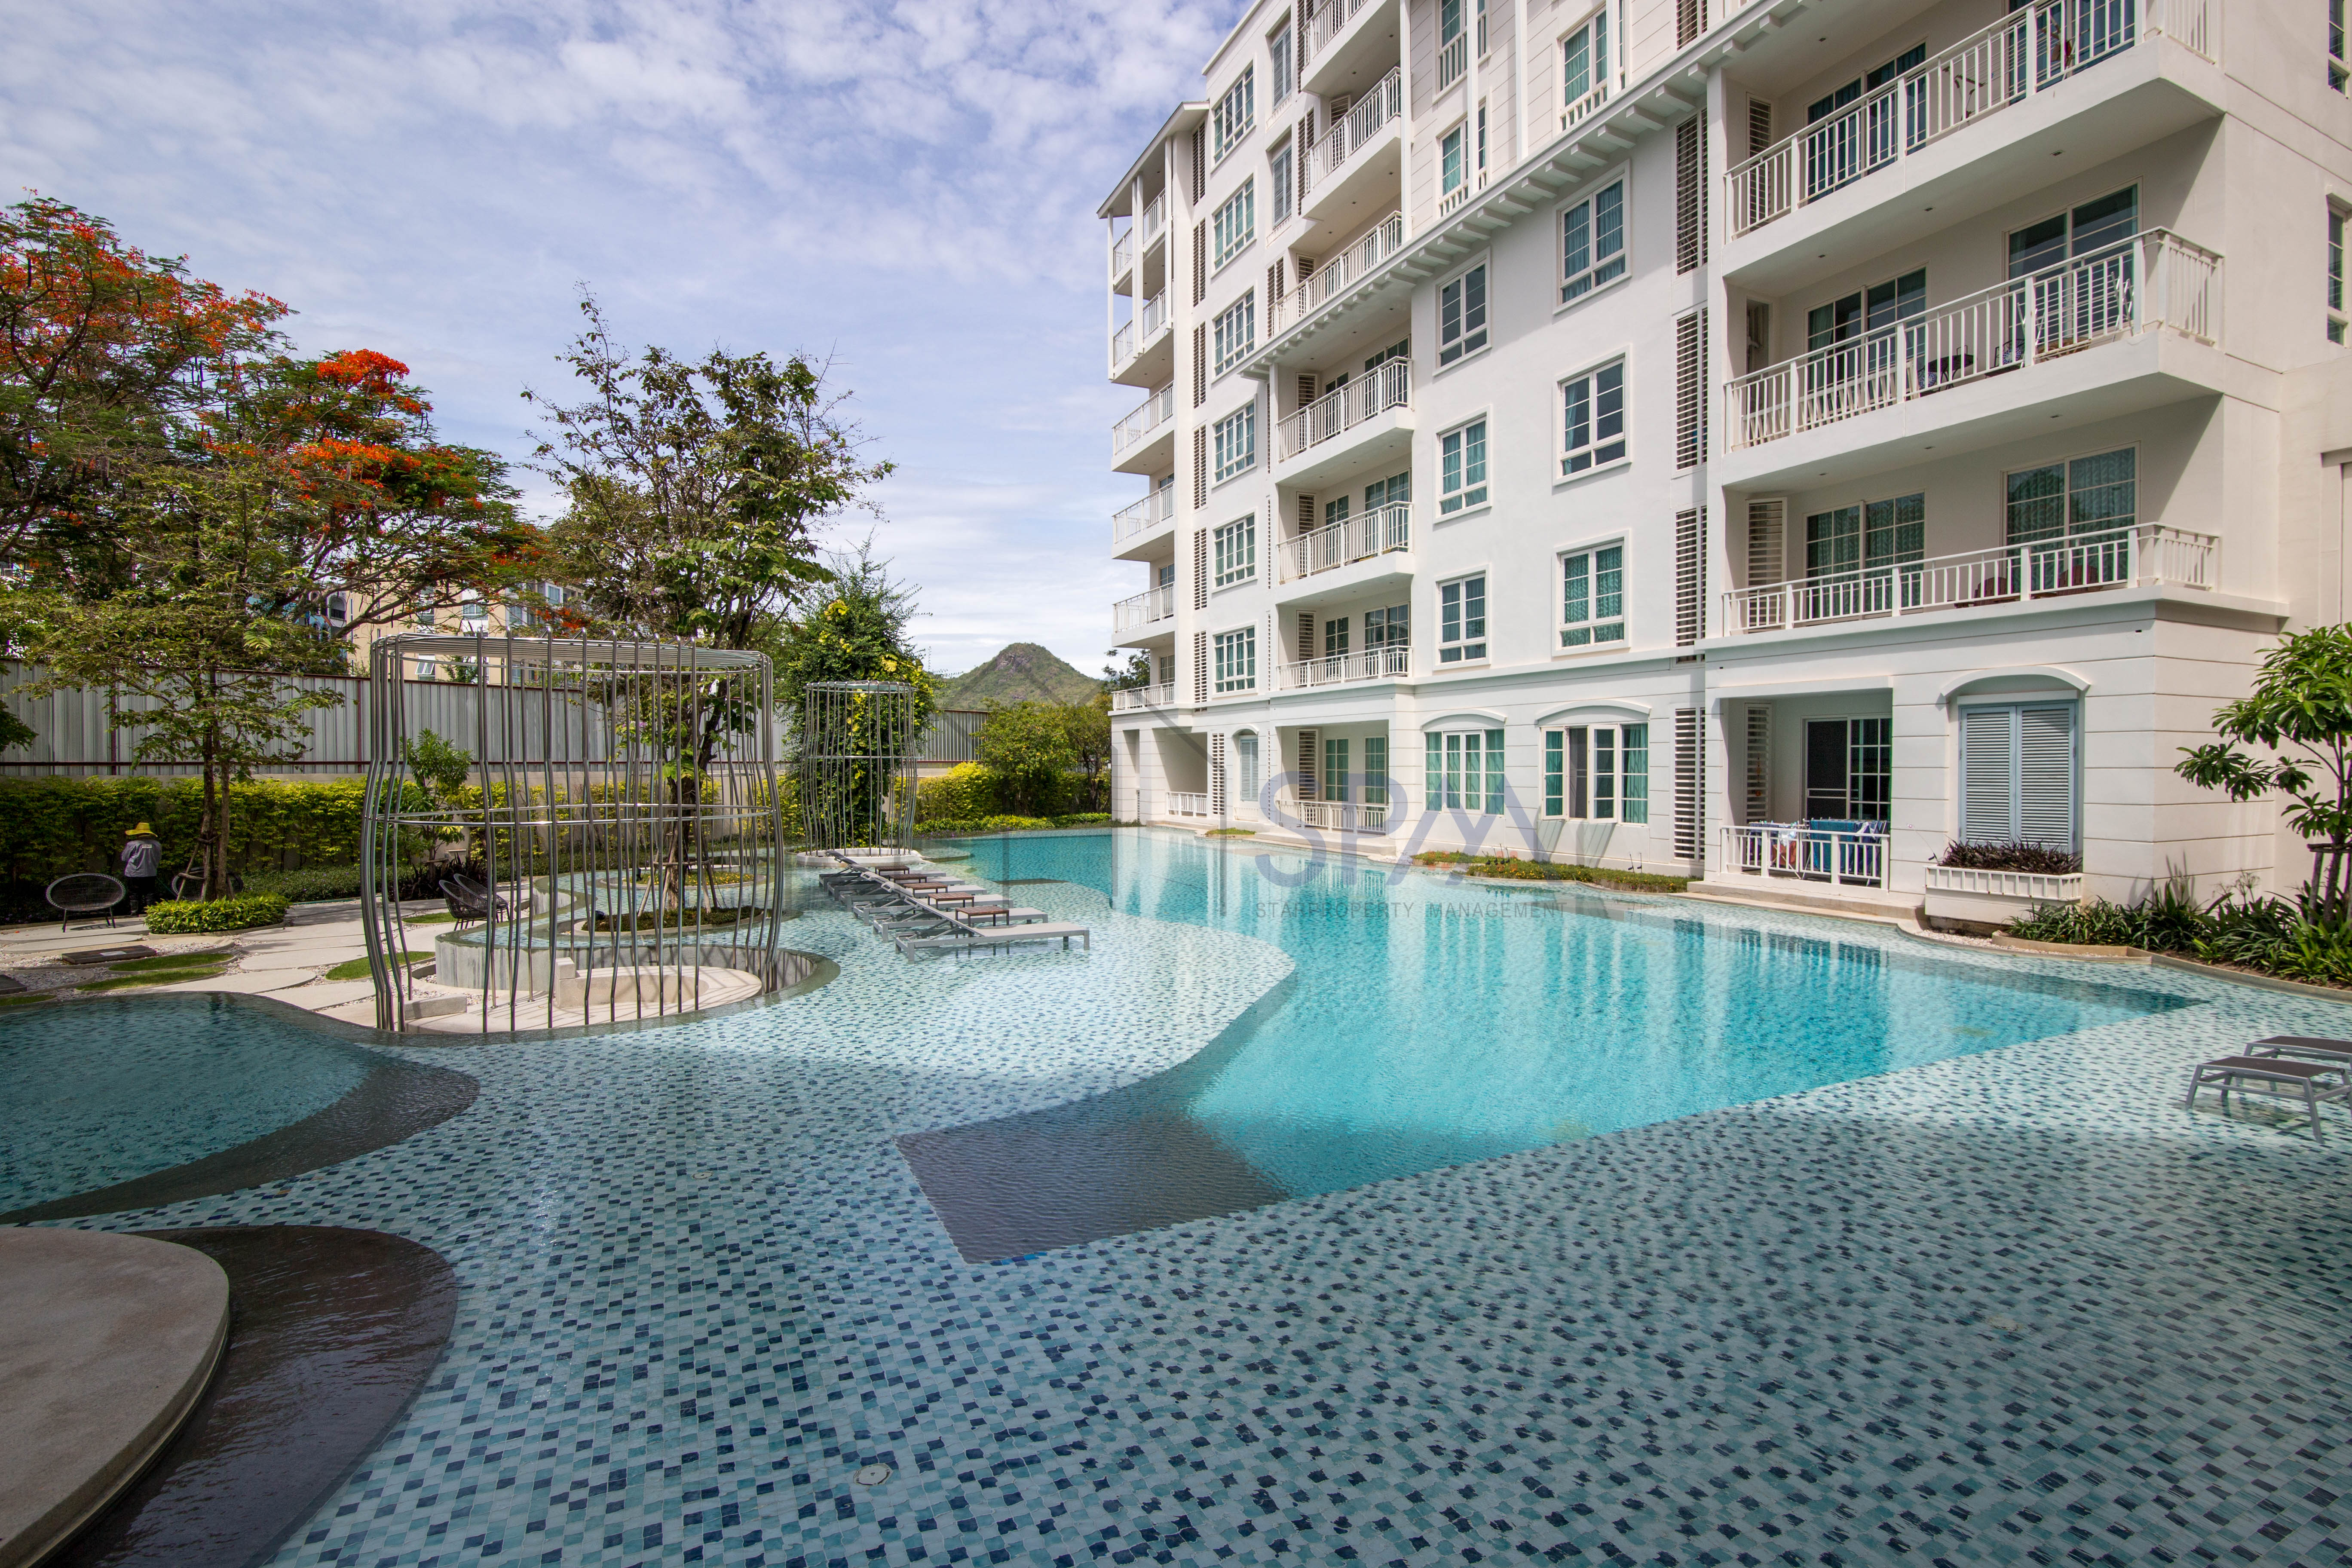 1 bedroom unit at Summer Condominium, pool view on 5th floor for Sale